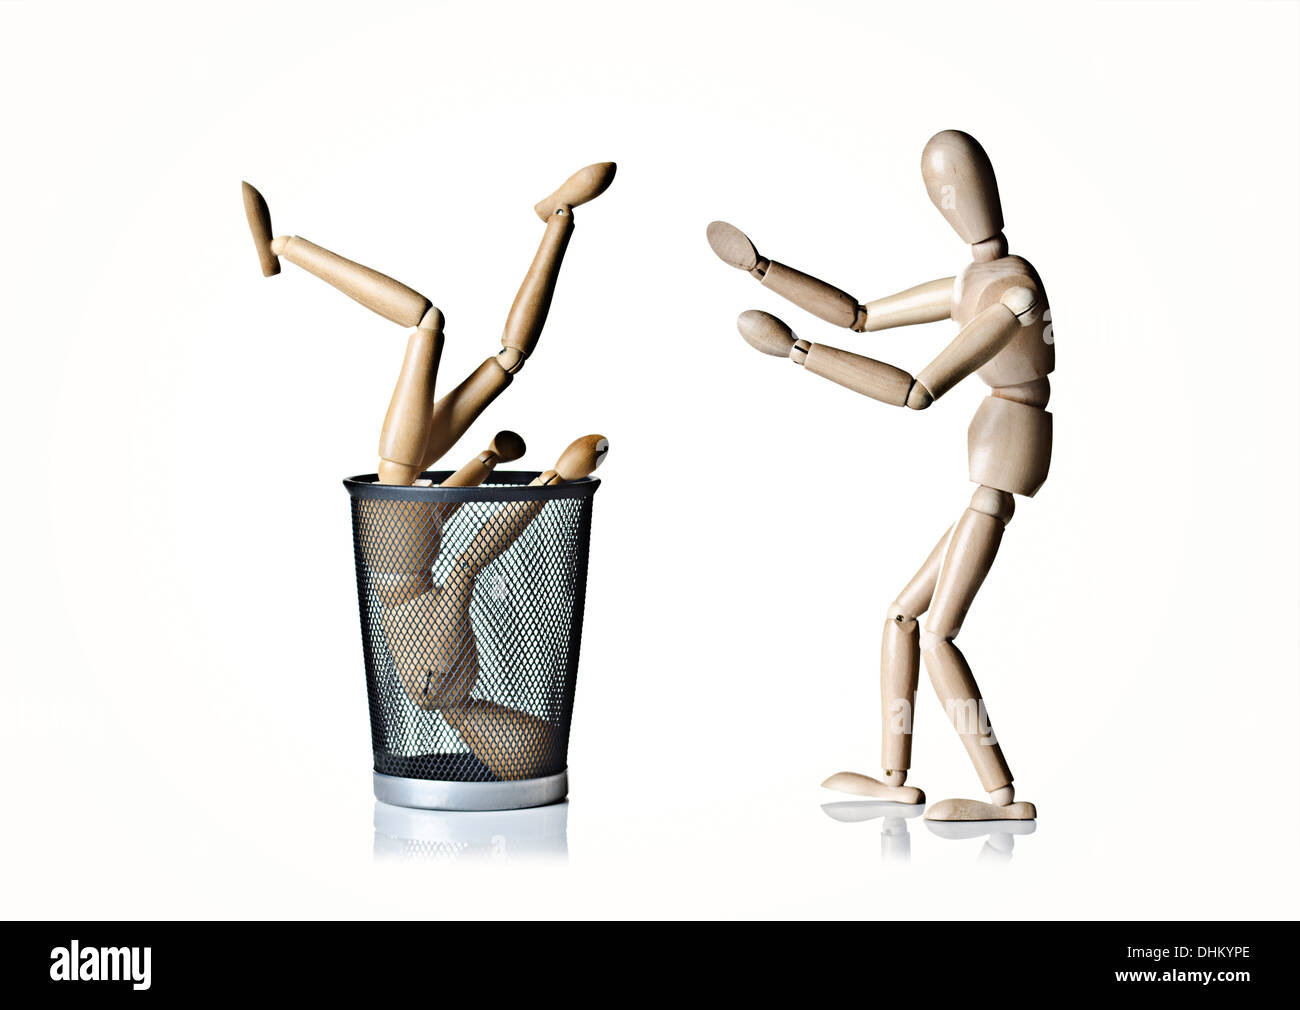 Two manikins, anatomical models, one in trash can, one helping the other - Stock Image